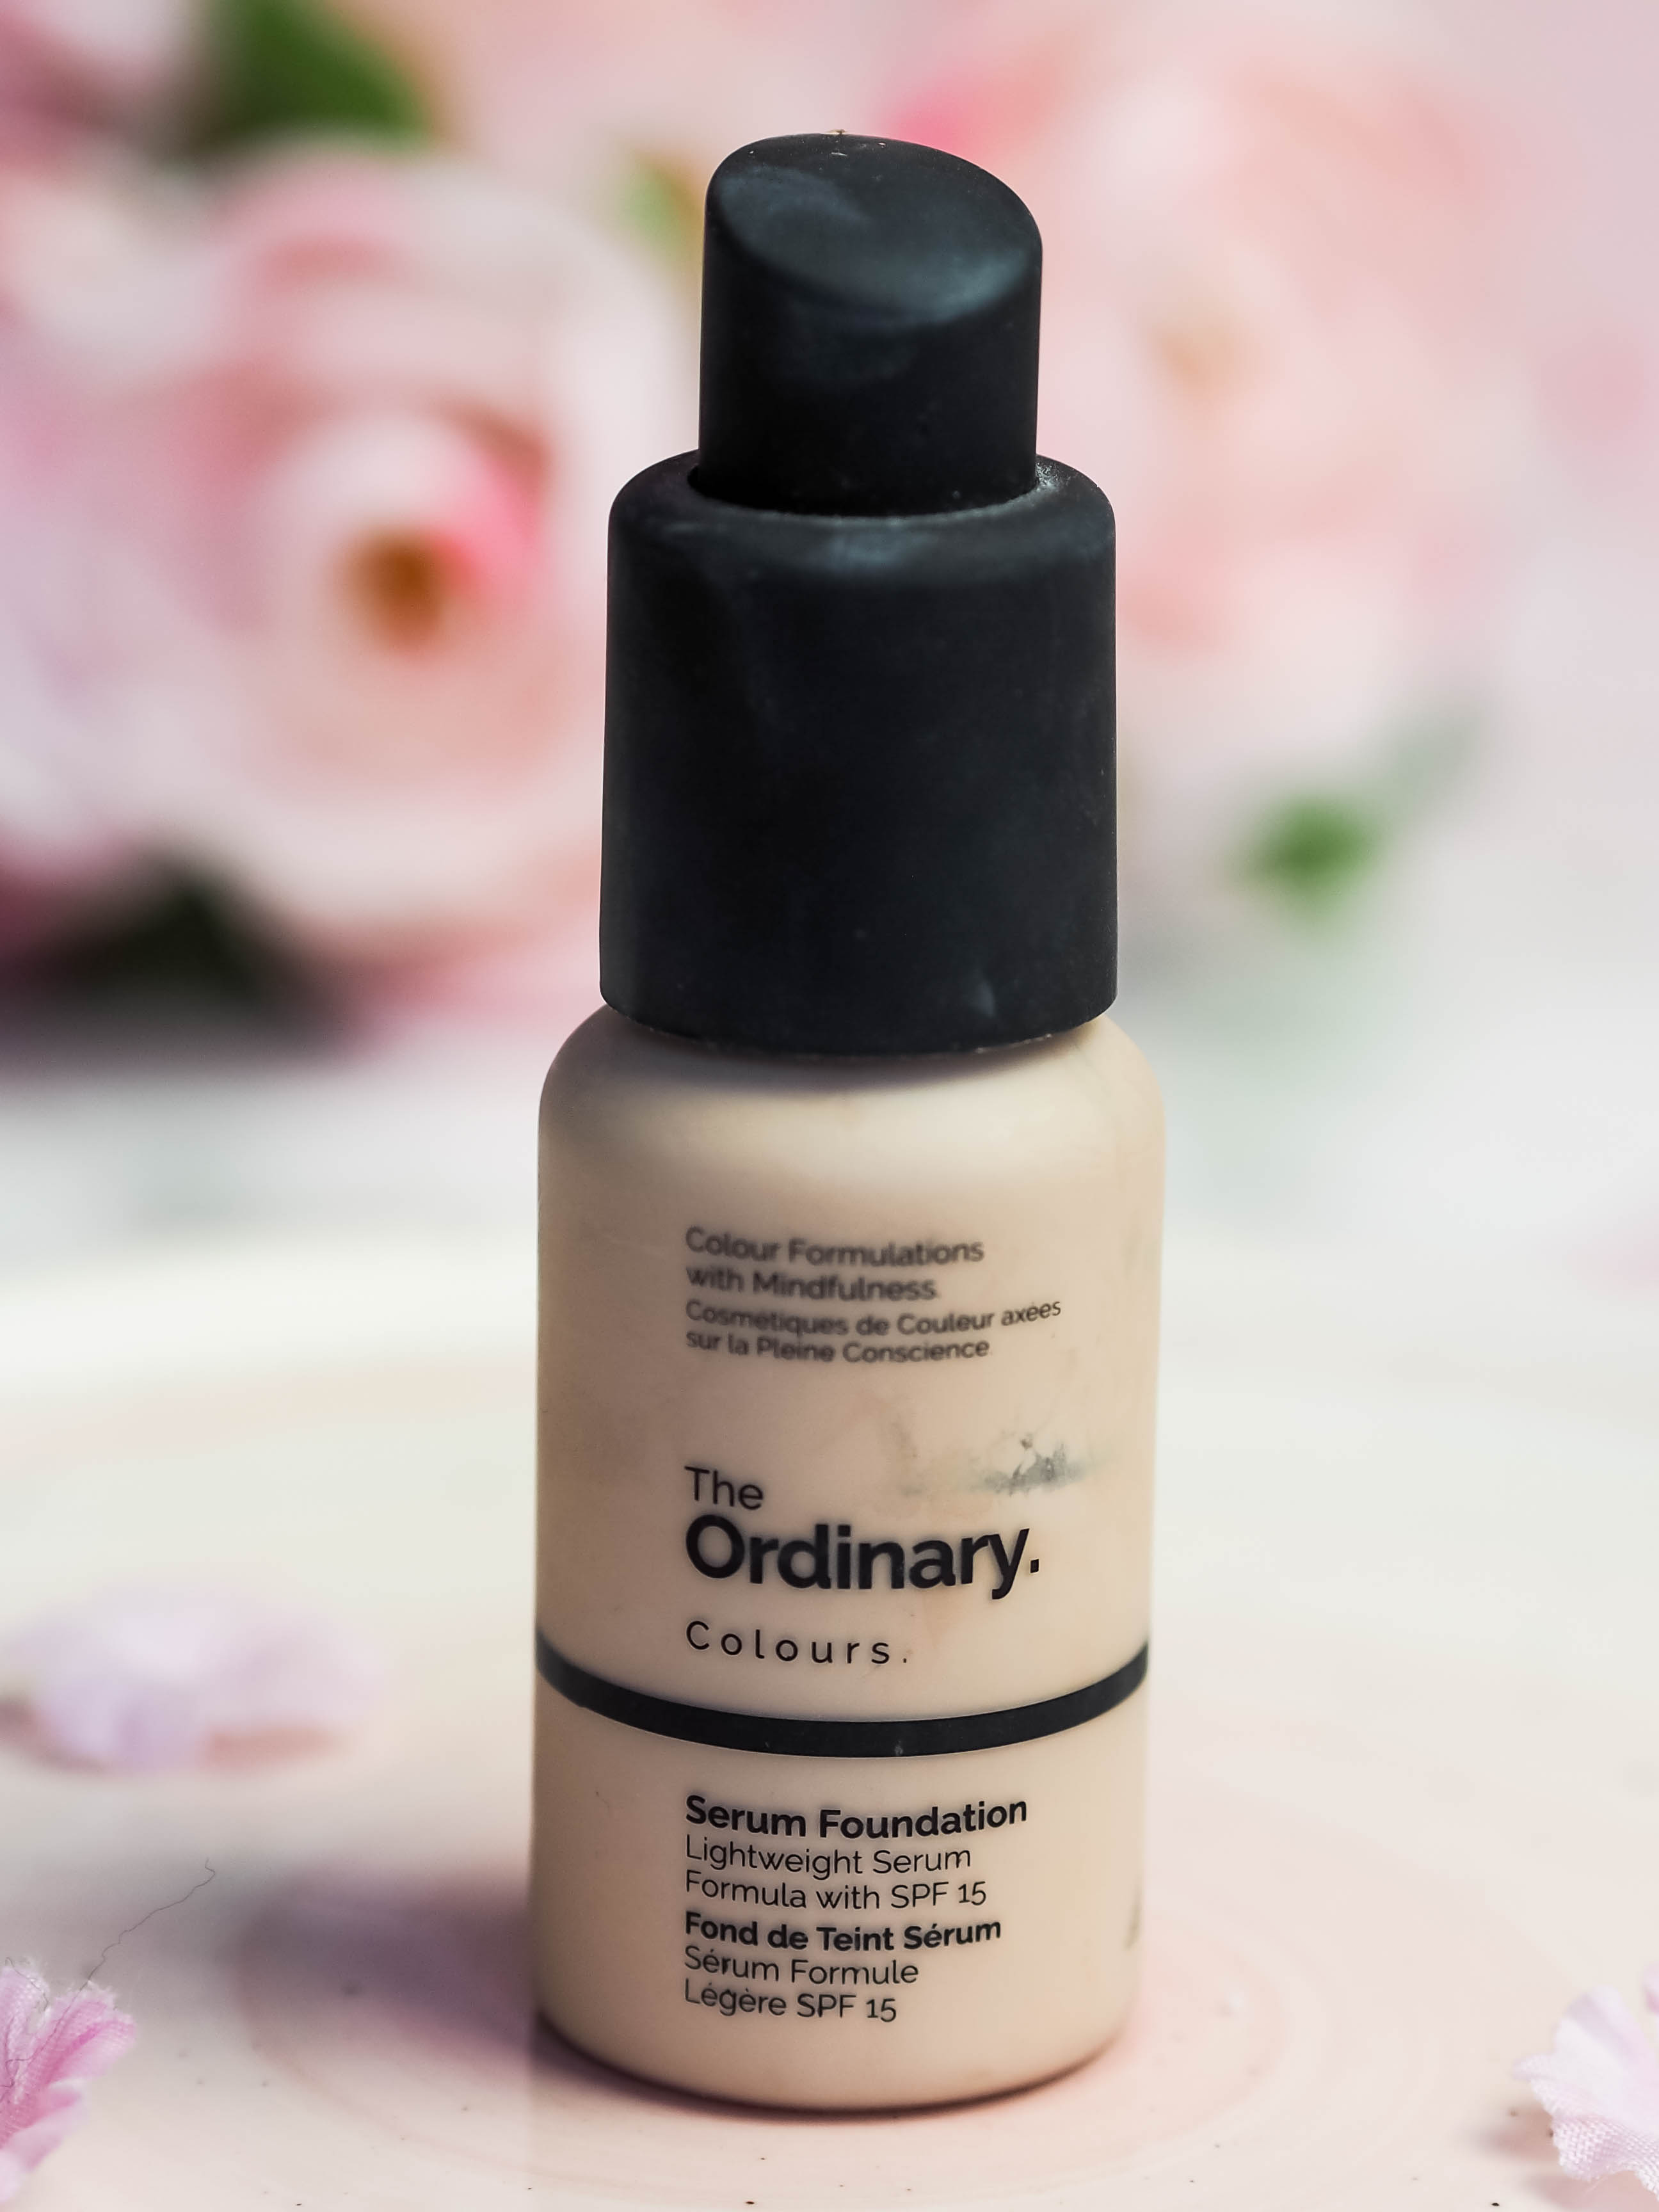 Favourite foundations